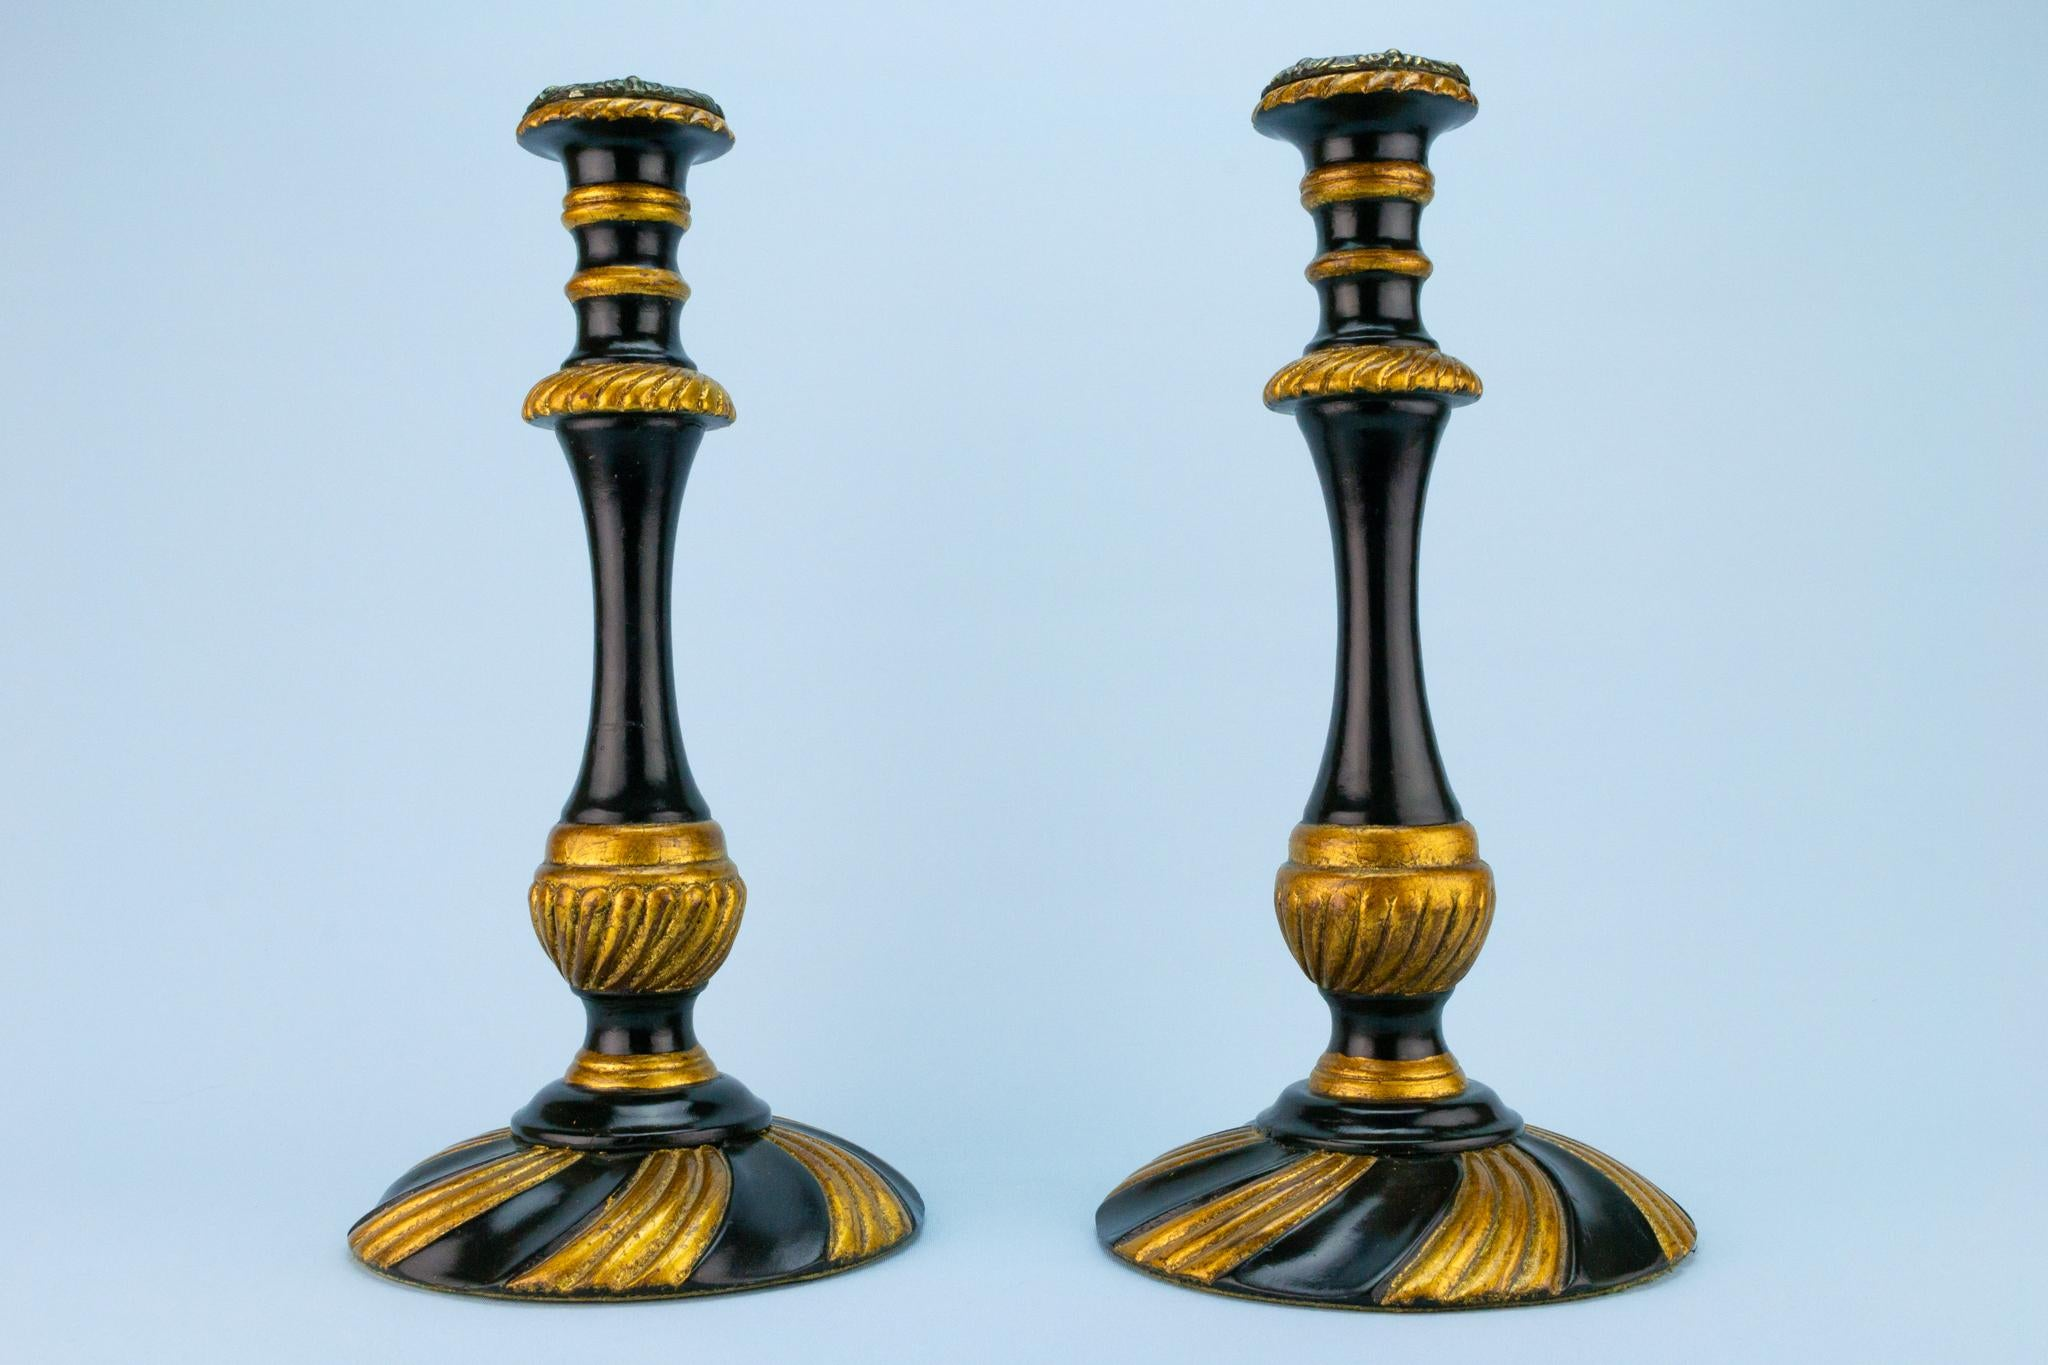 Large Black and Gold Candlestick in Wood